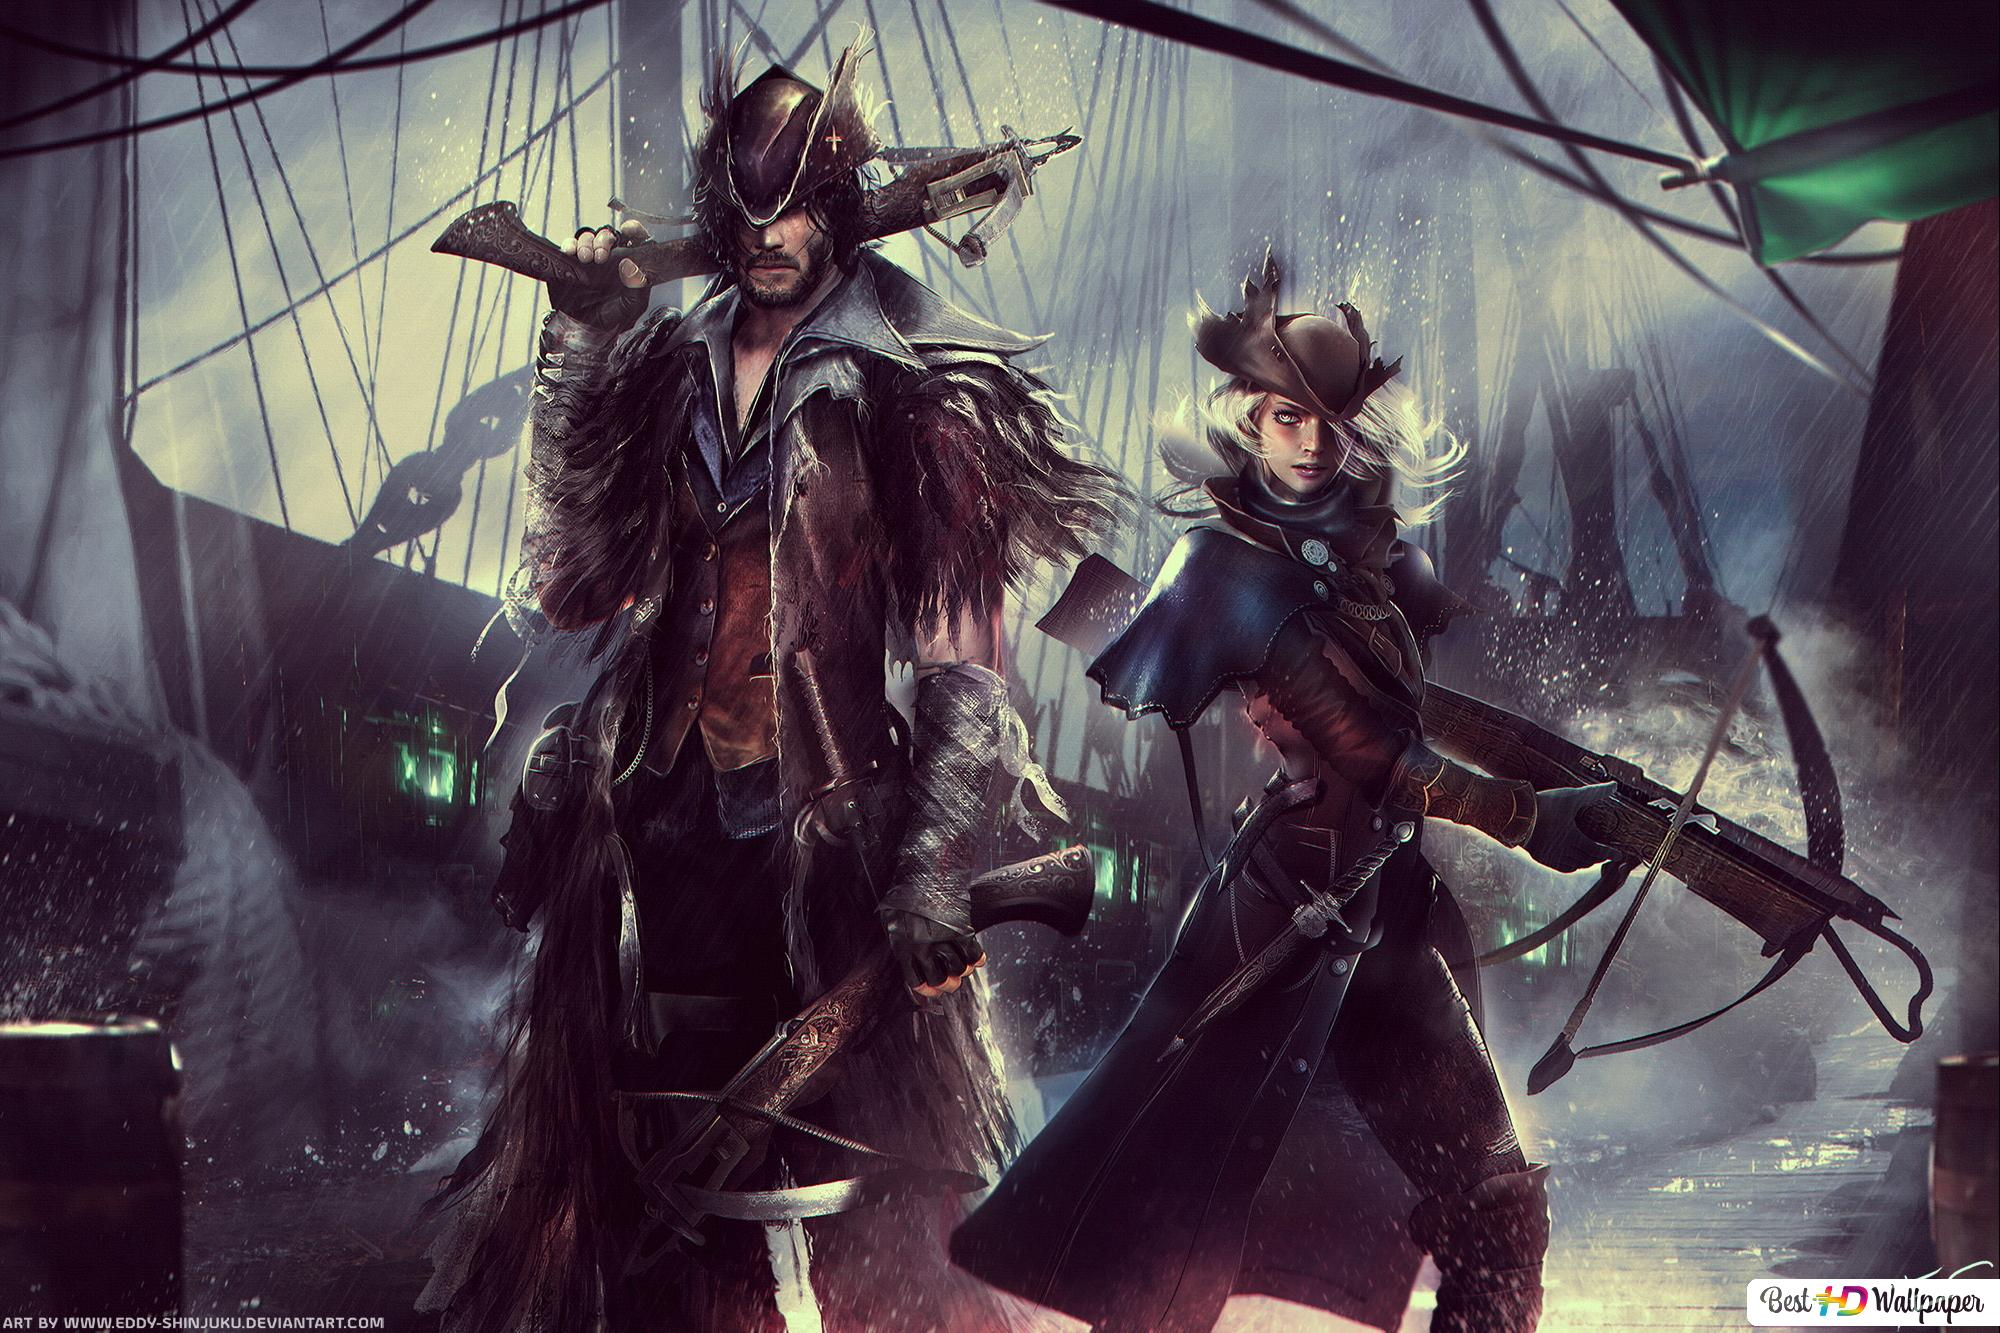 Bloodborne Themed Dungeons And Dragons Hd Wallpaper Download